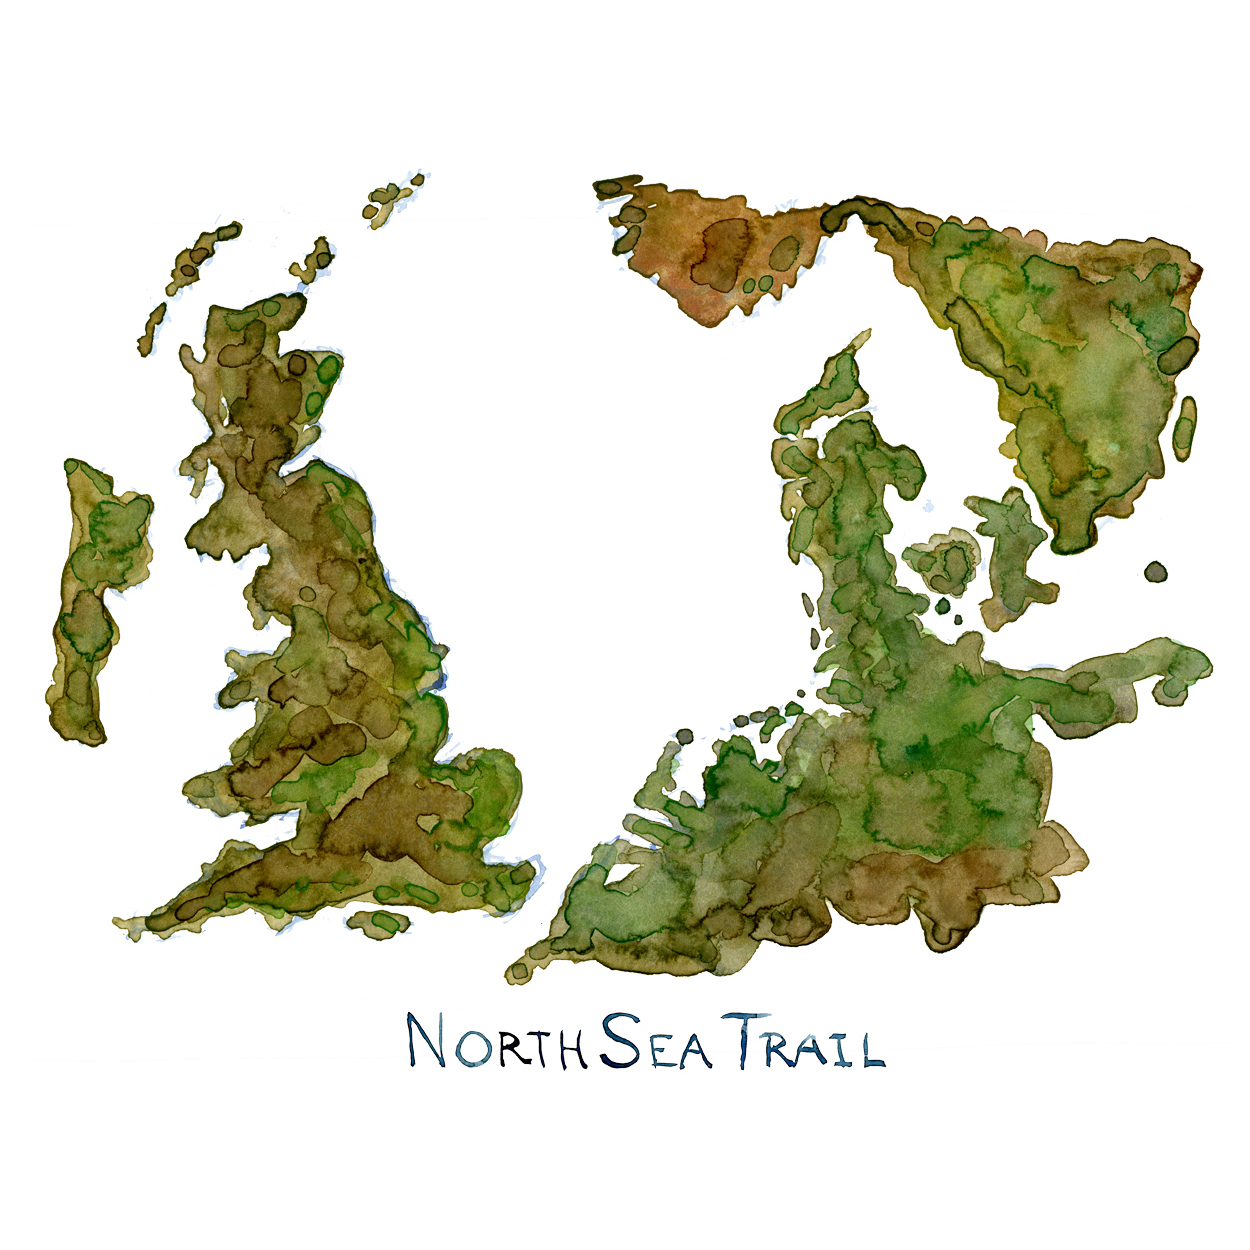 Watercolor map of the North Sea with the North Sea Trail written on it